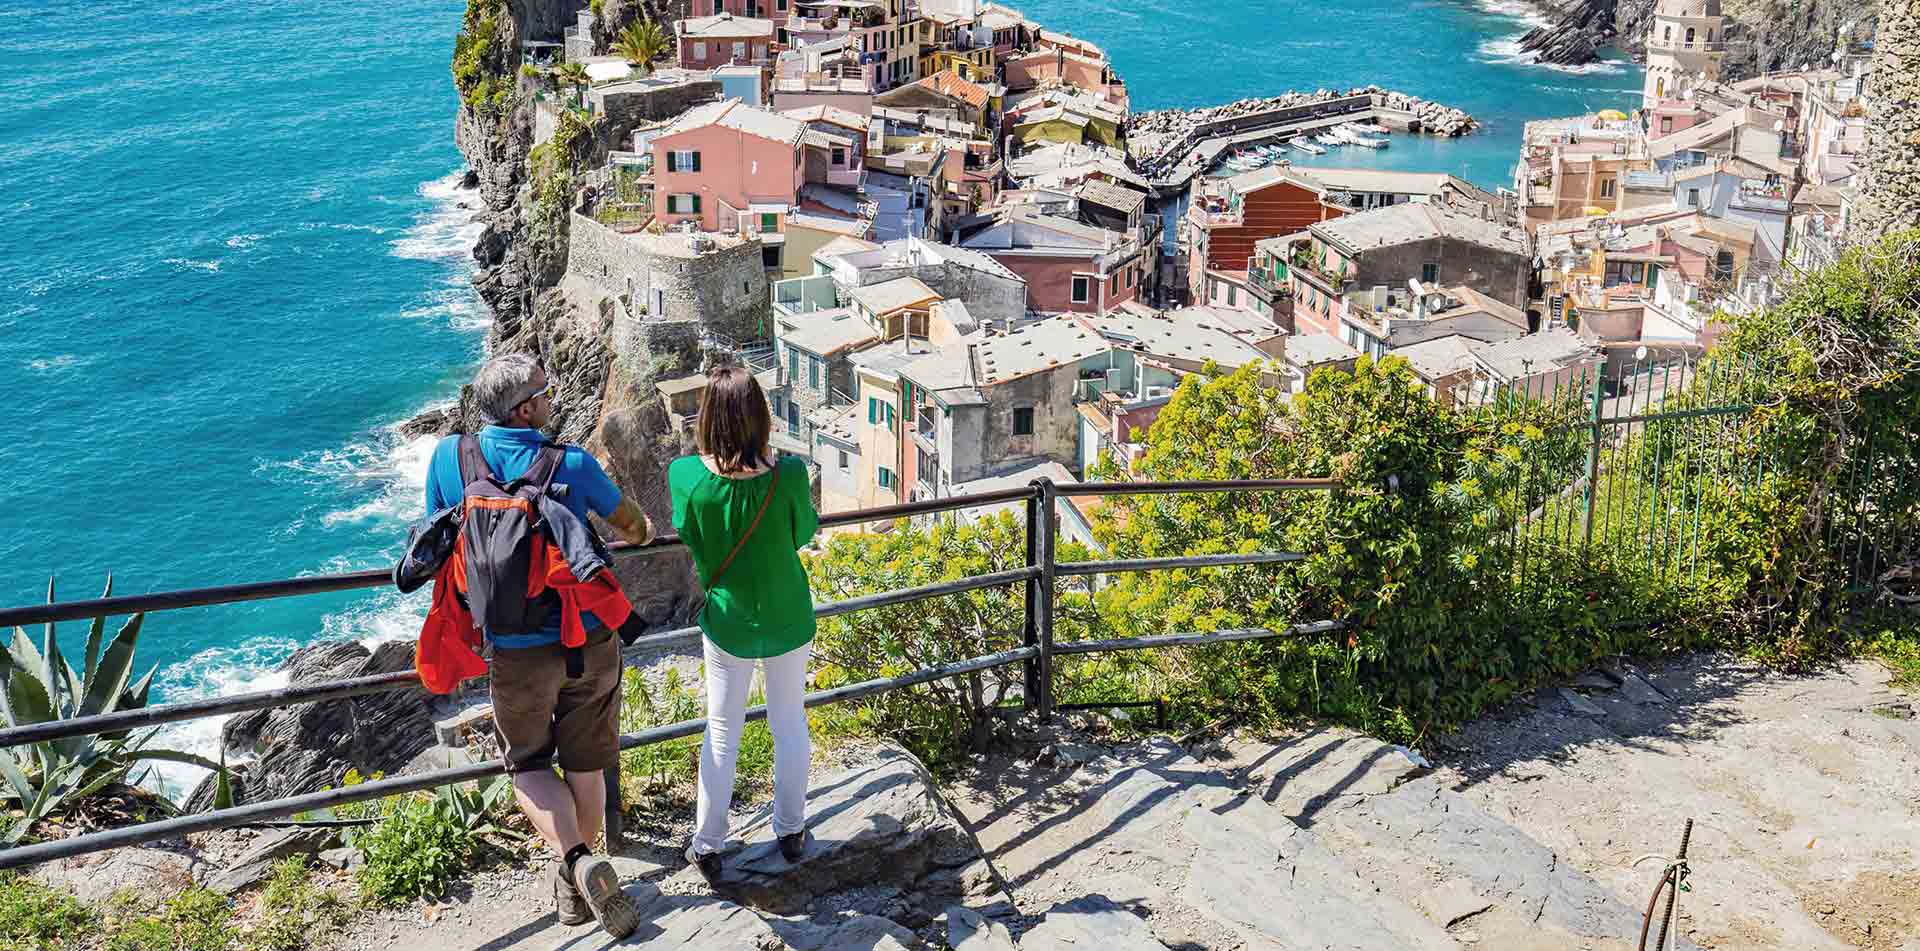 Europe Italy Liguria couple enjoying the view of Cinque Terra from above - luxury vacation destinations